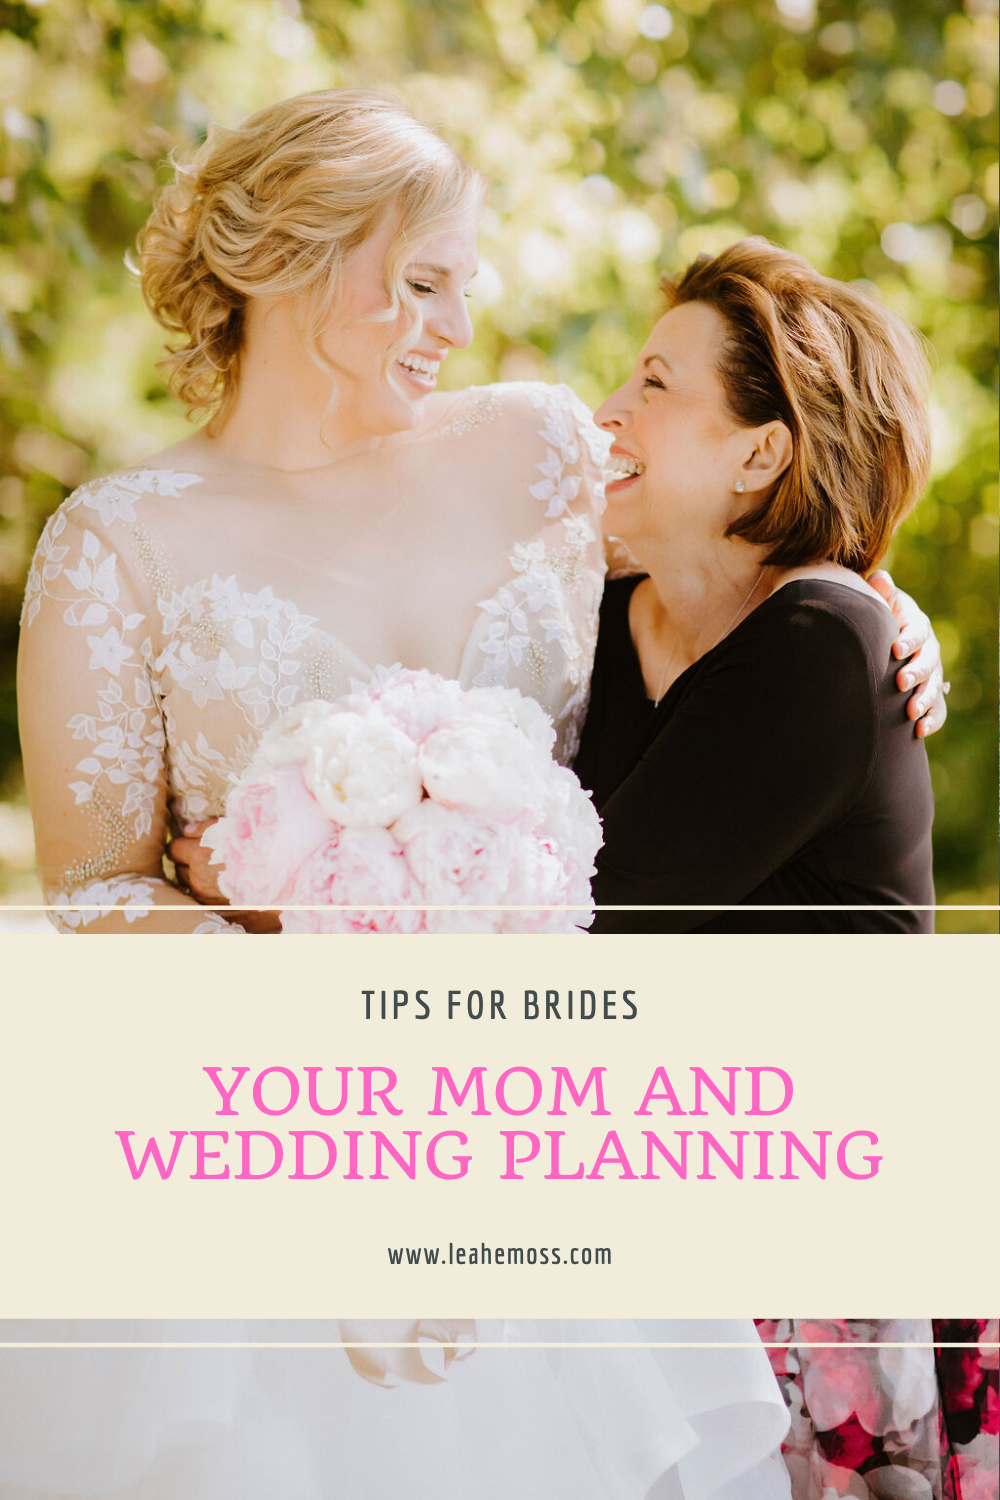 How mom can help with wedding planning - Leah E. Moss Designs - wedding planning tips for brides during coronavirus, get mom's help with plans